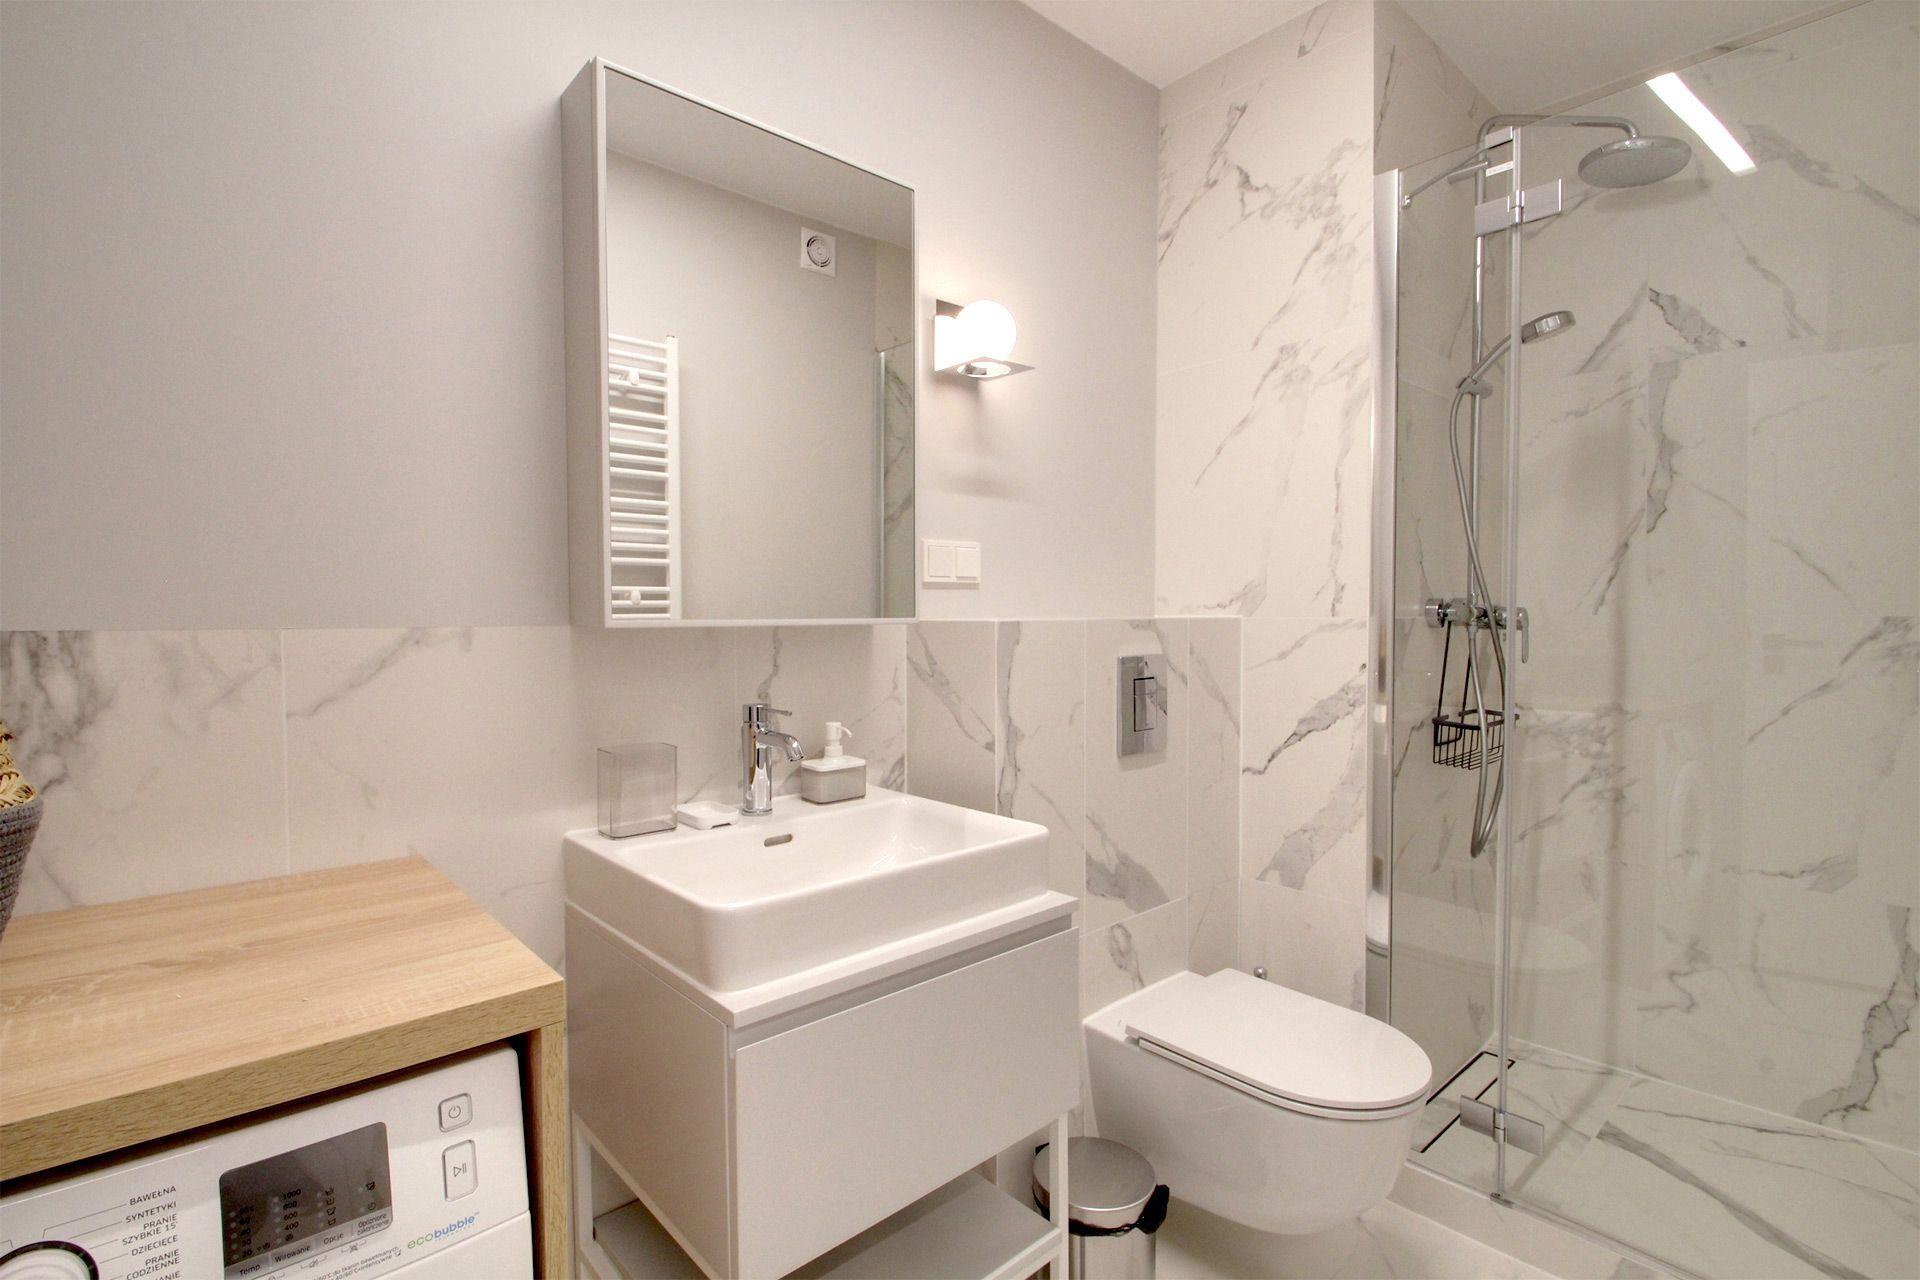 Studio - Small apartment to rent in Warsaw UPR-A-062-1